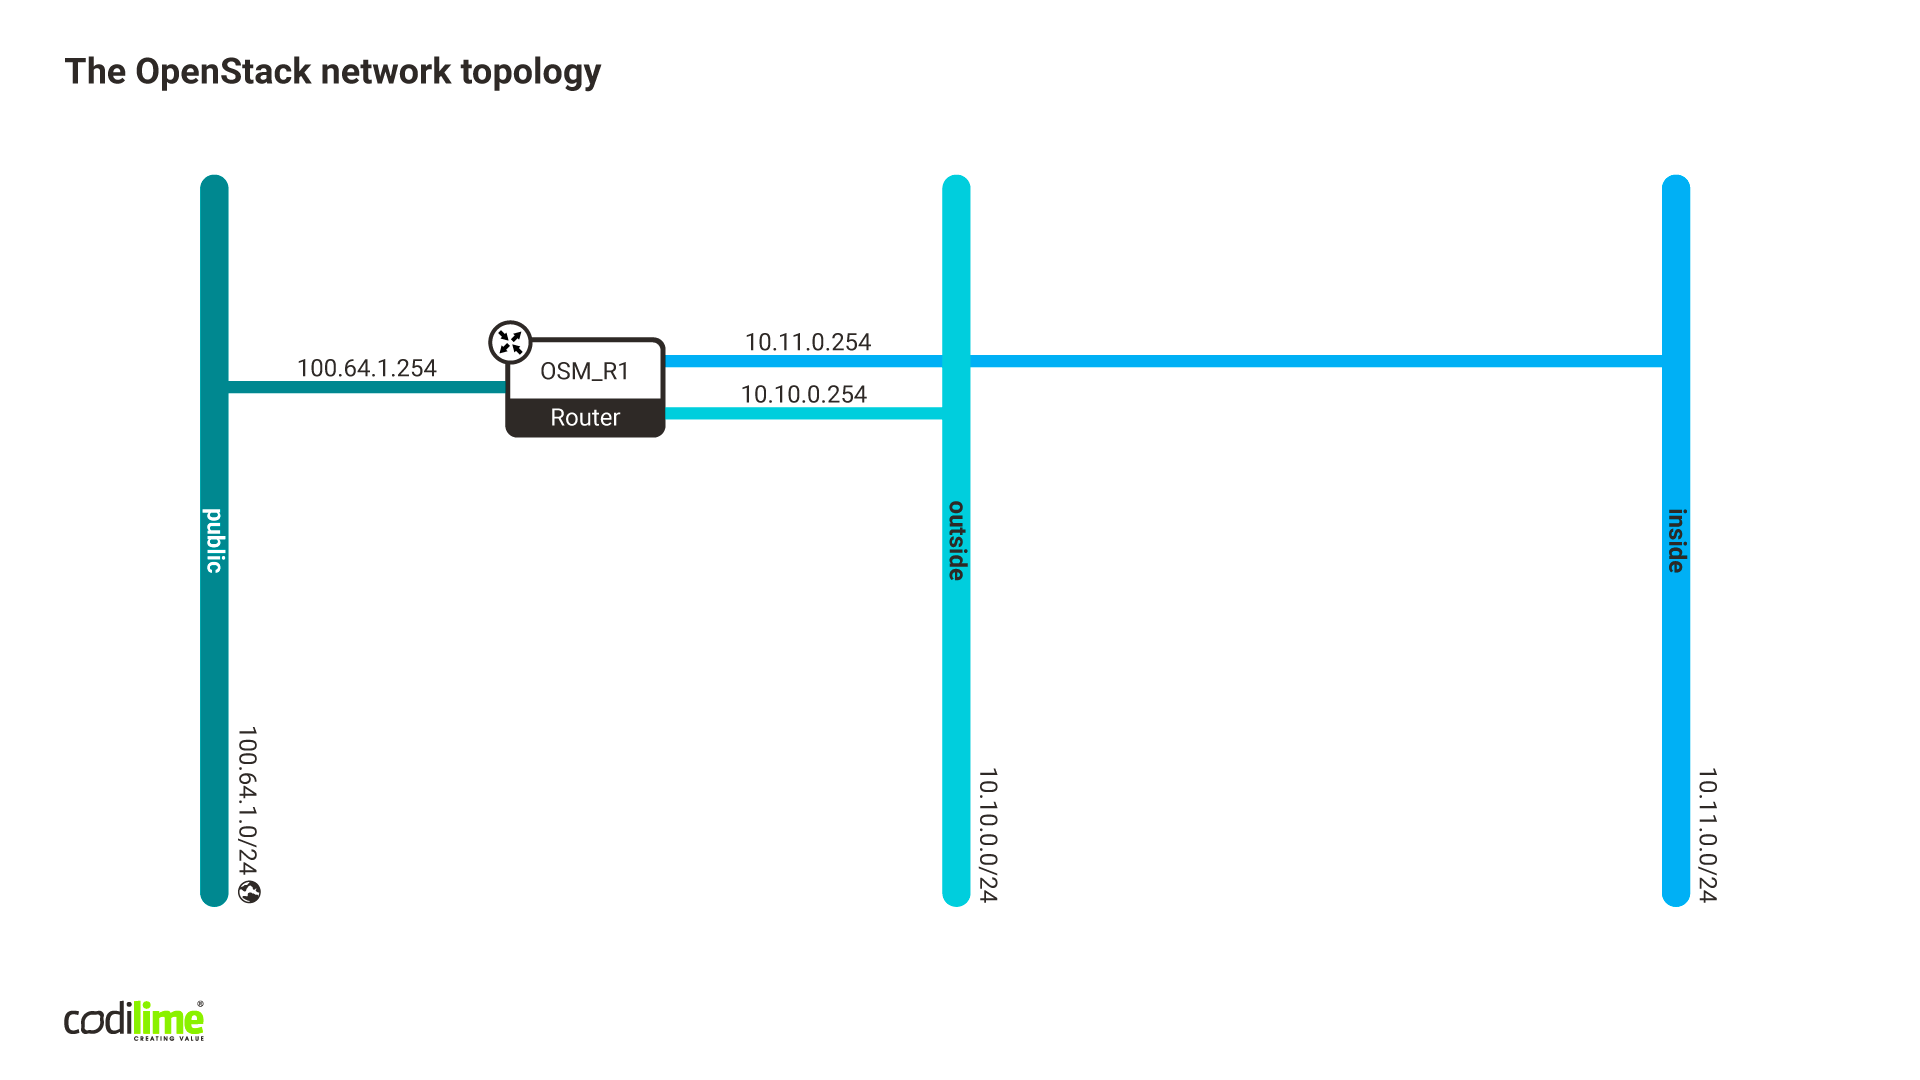 The OpenStack network topology